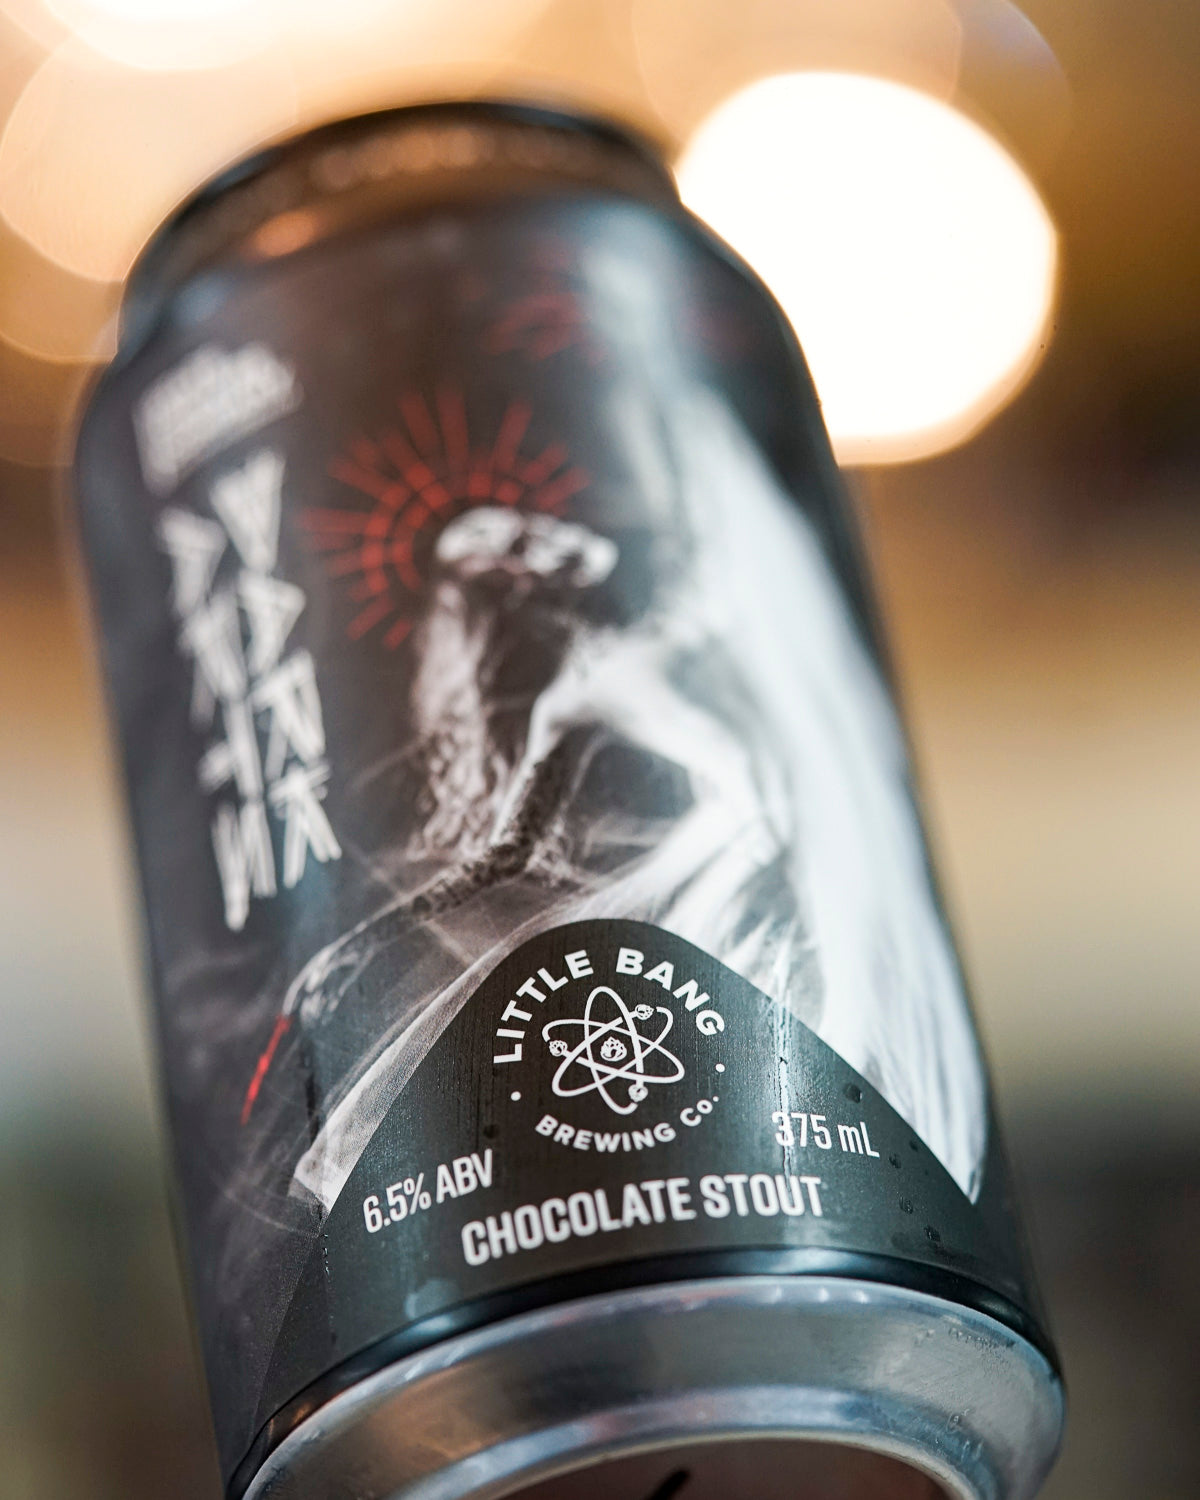 Little Bang 'Dark Arts' Chocolate Stout 375mL